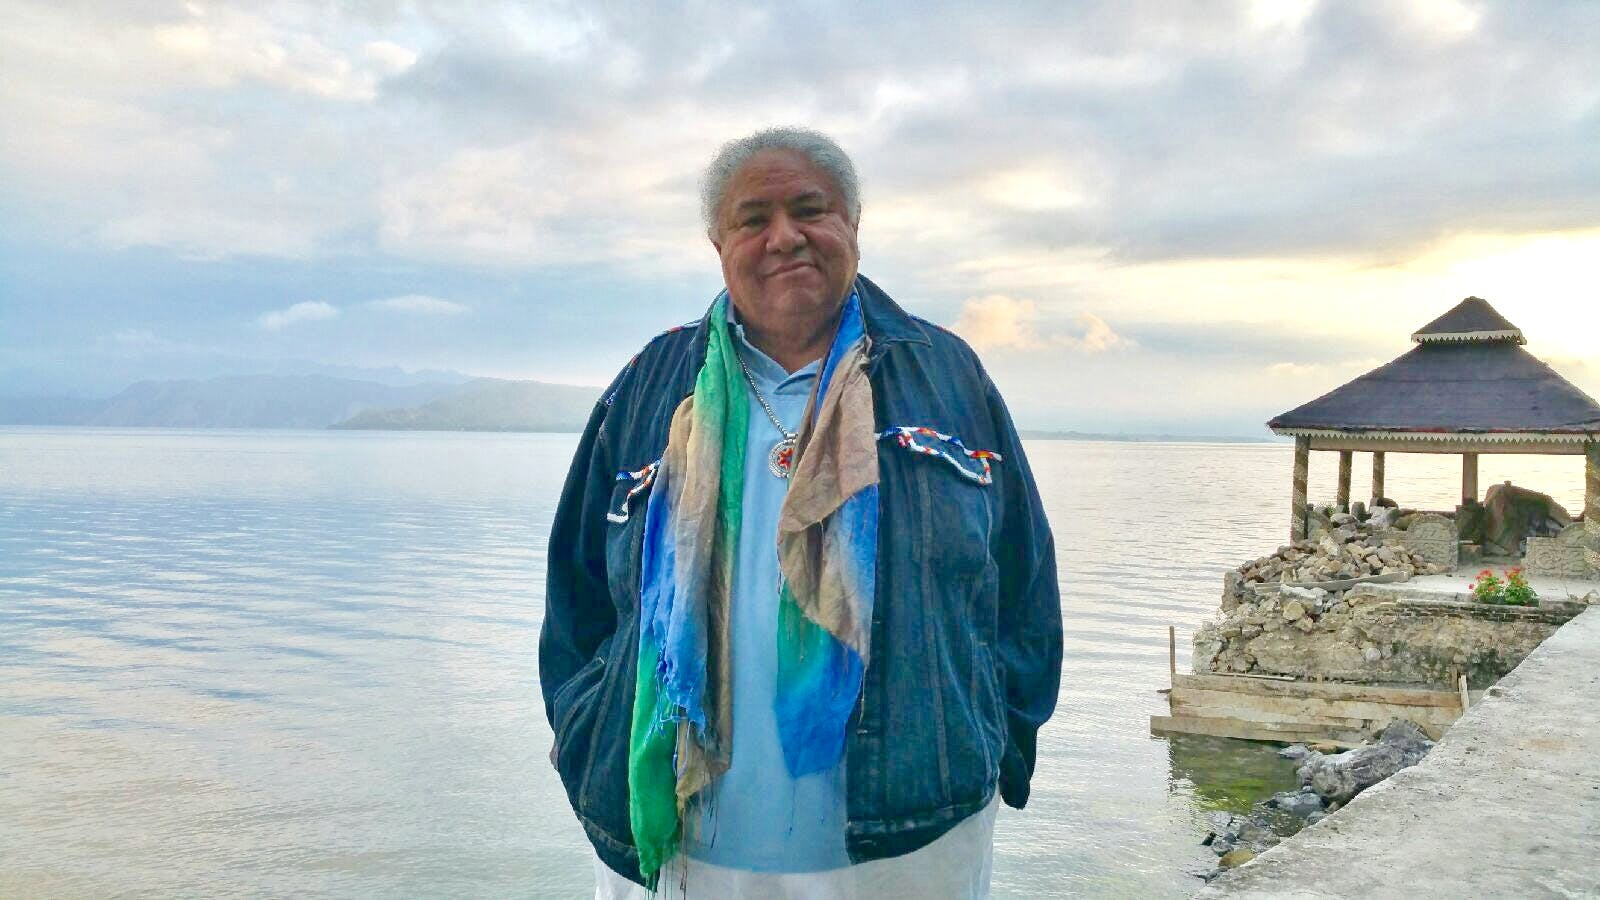 Native man standing in front of a large body of water.